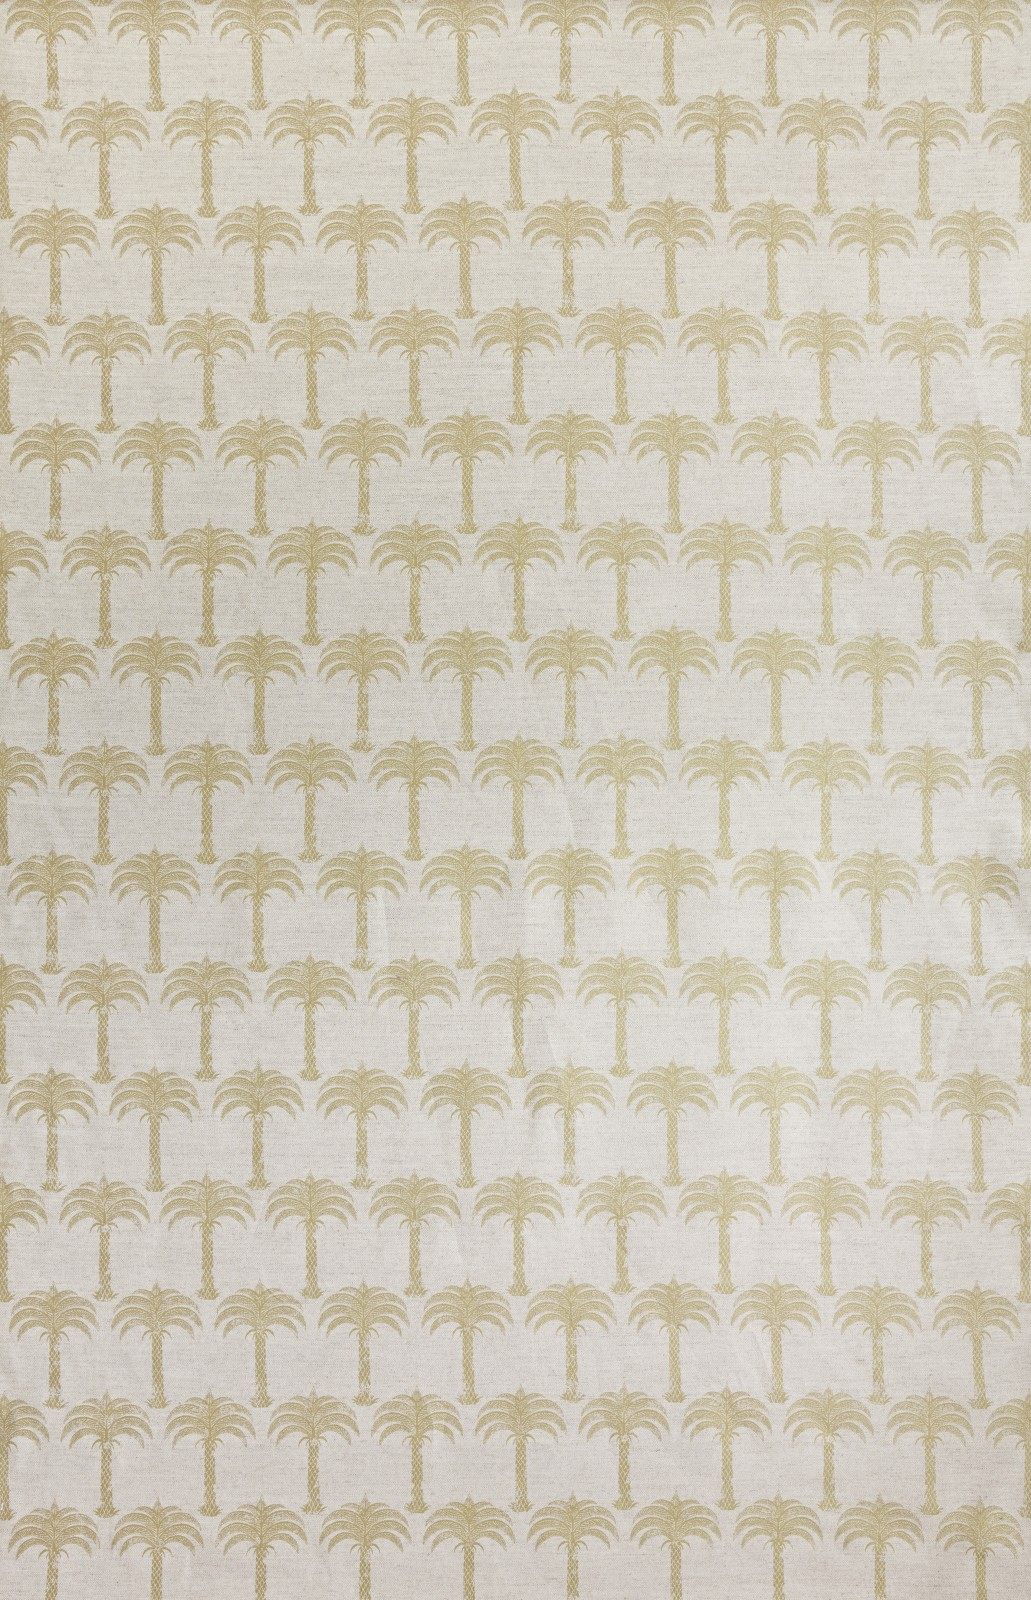 Marrakech Palm Fabric Gold on Natural